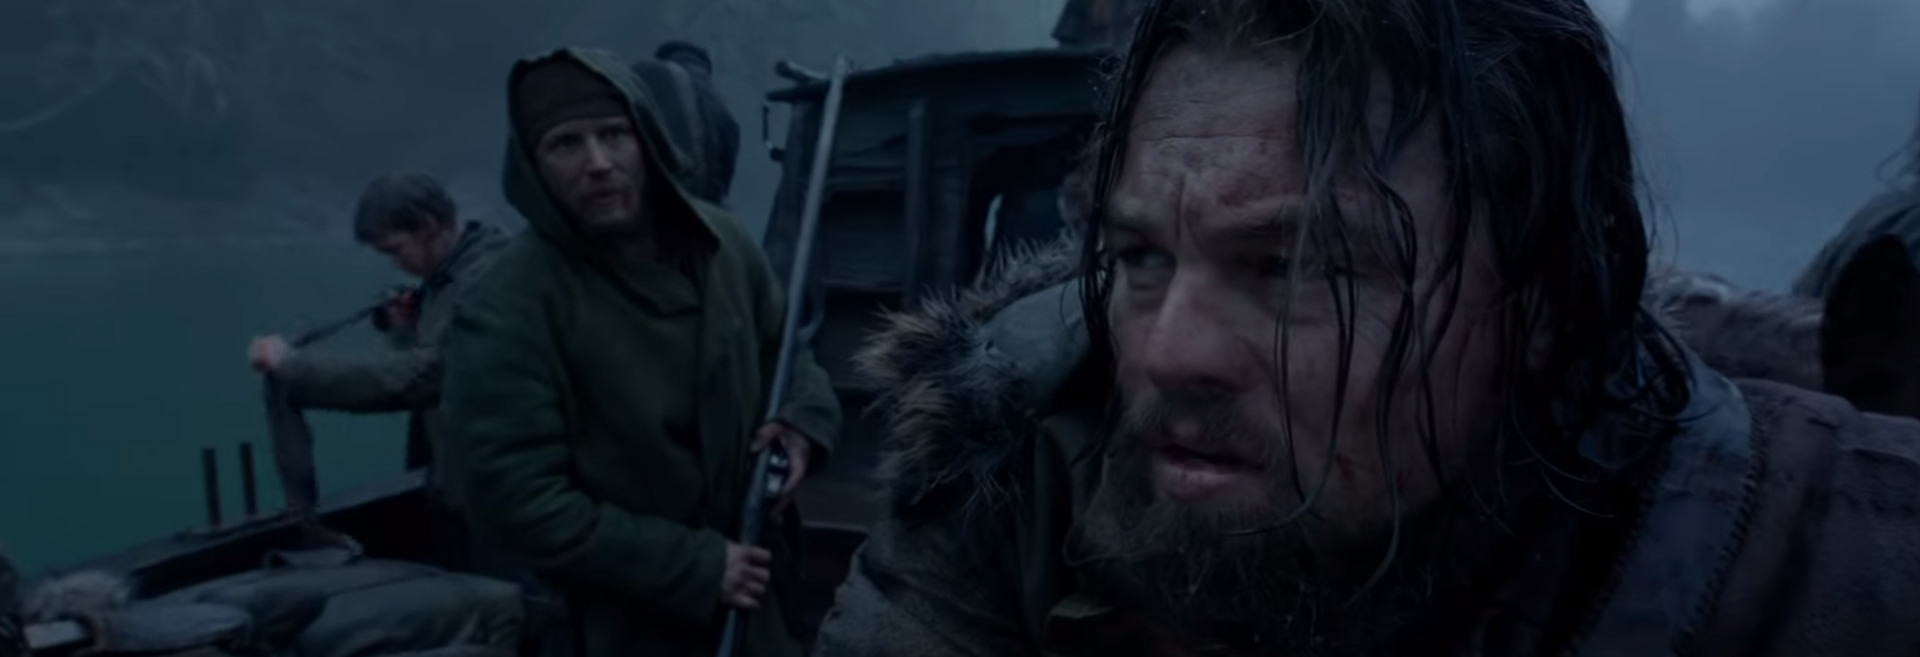 The Revenant. Image Credit: 20th Century Fox.